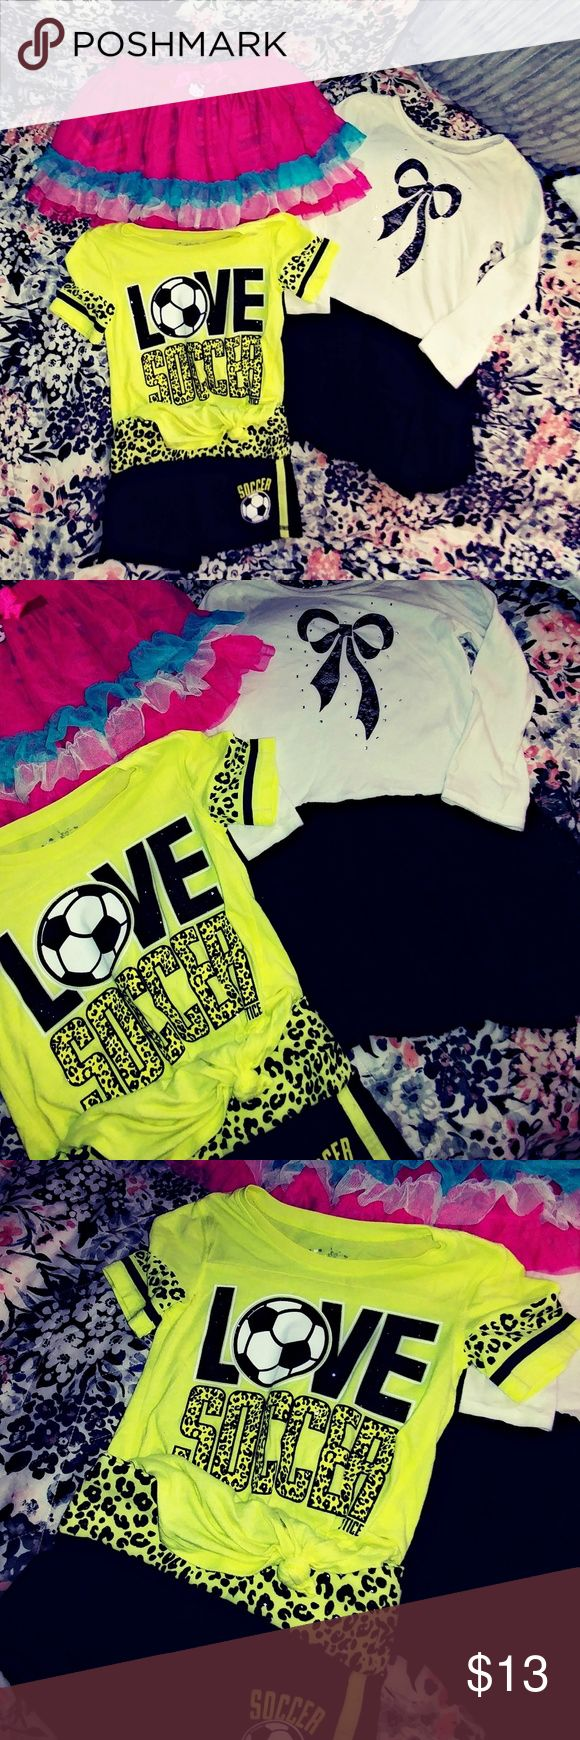 GIRL'S LOT • SIZE 5/6  EUC! NO STAINS, HOLES OR DEFECTS!  INCLUDES: • HELLO KITTY SKIRT • JUSTICE SOCCER OUTFIT • TCP DRESS   BUNDLE & SAVE! IF BUNDLE EXCEEDS THE 5LB WEIGHT LIMIT ADDITIONAL SHIPPING IS REQUIRED TO BE PAID FOR BY BUYER   ⚓ NO TRADES ⚓ NO LOW BALL OFFERS ⚓ I DO NOT MODEL MY LISTINGS ⚓ NO OFF POSH TRANSACTIONS   I USUALLY SHIP IN 24 HRS EXCEPT WEEKENDS & HOLIDAYS SHIP THE NEXT BUSINESS DAY!   THANKS FOR LOOKING! ⚓AM7X70 Justice Shirts & Tops